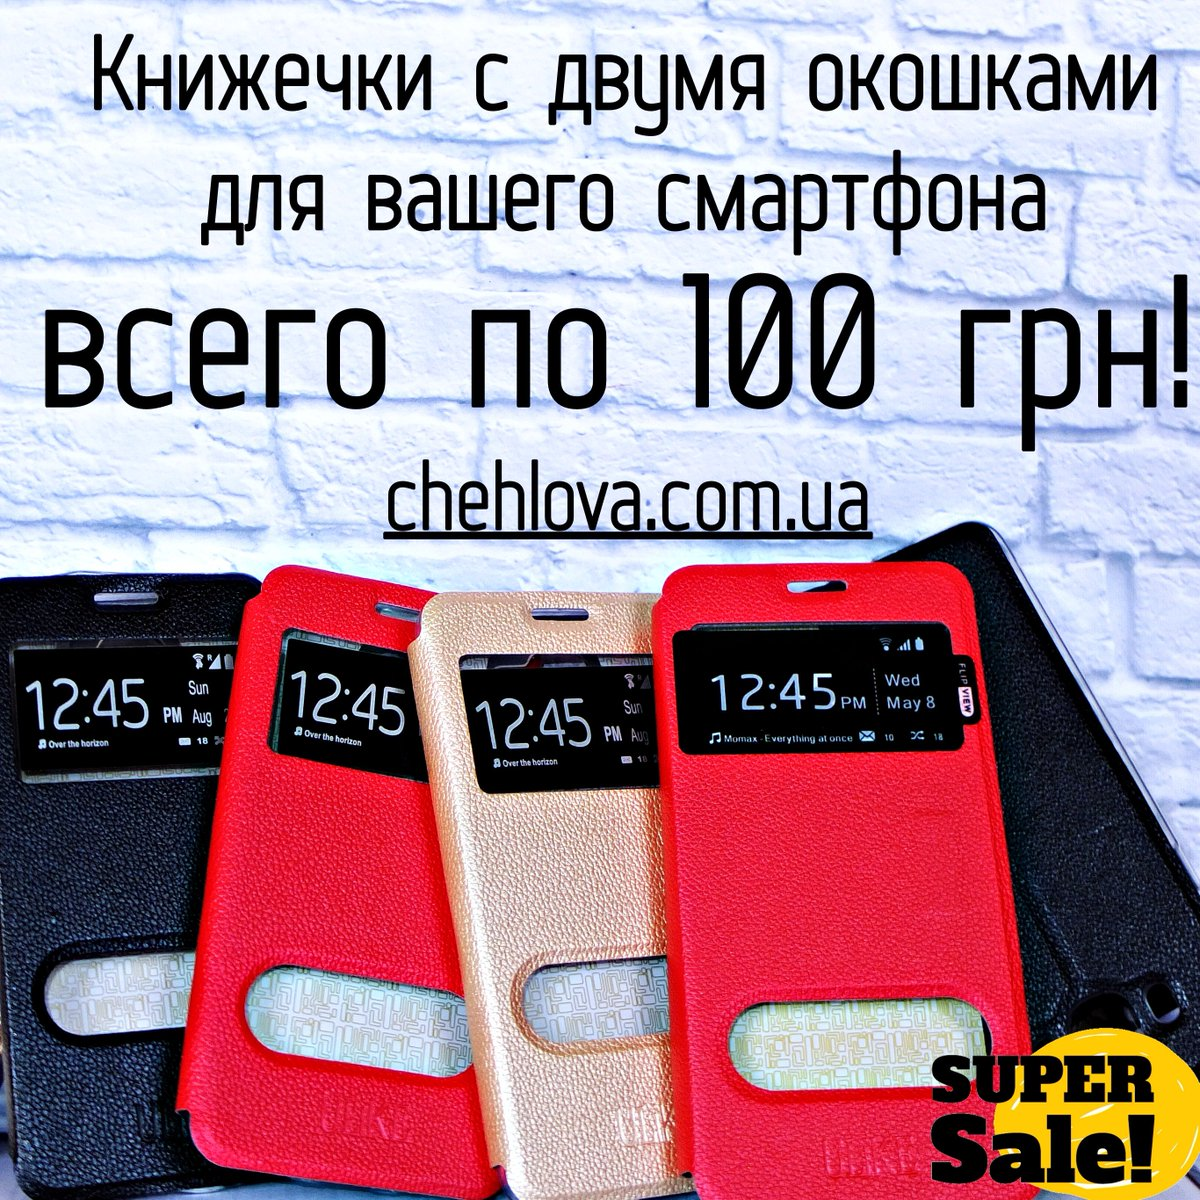 100 программ для windows